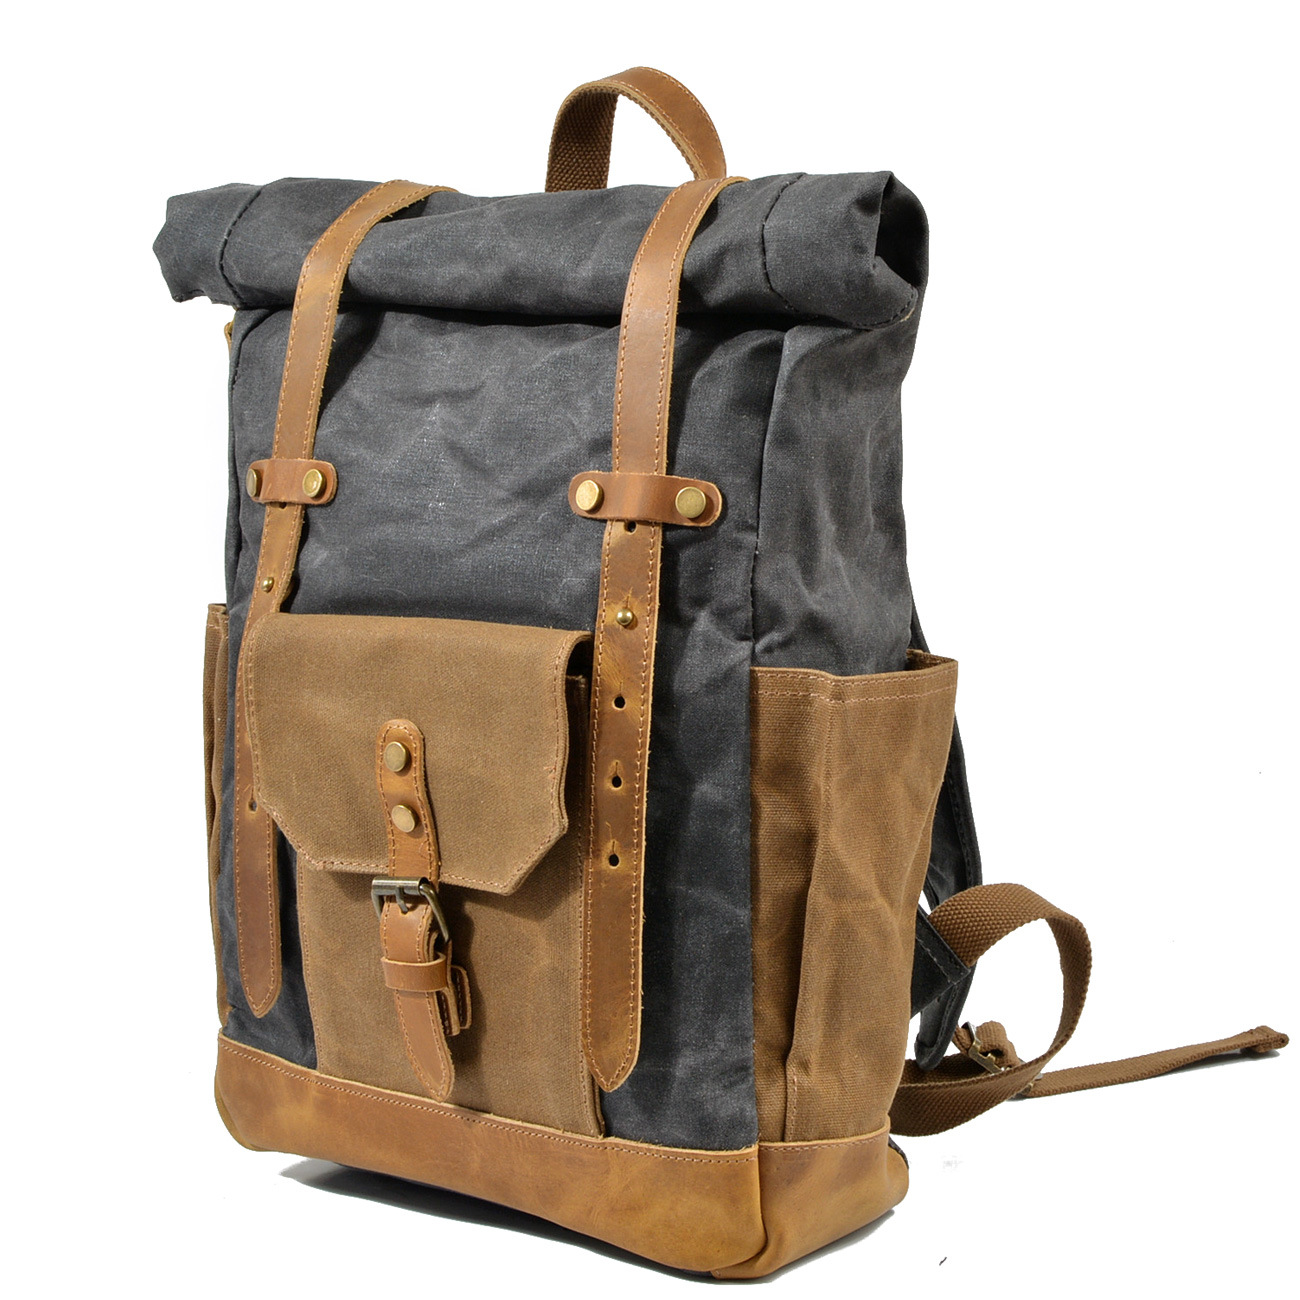 2018 Men Vintage Military Backpack Large Capacity Waterproof Oil Leather Wexed Canvas bags Travel Bag School Rucksack Backpack augur men s messenger bag multifunction canvas leather crossbody bag men military army vintage large shoulder bag travel bags